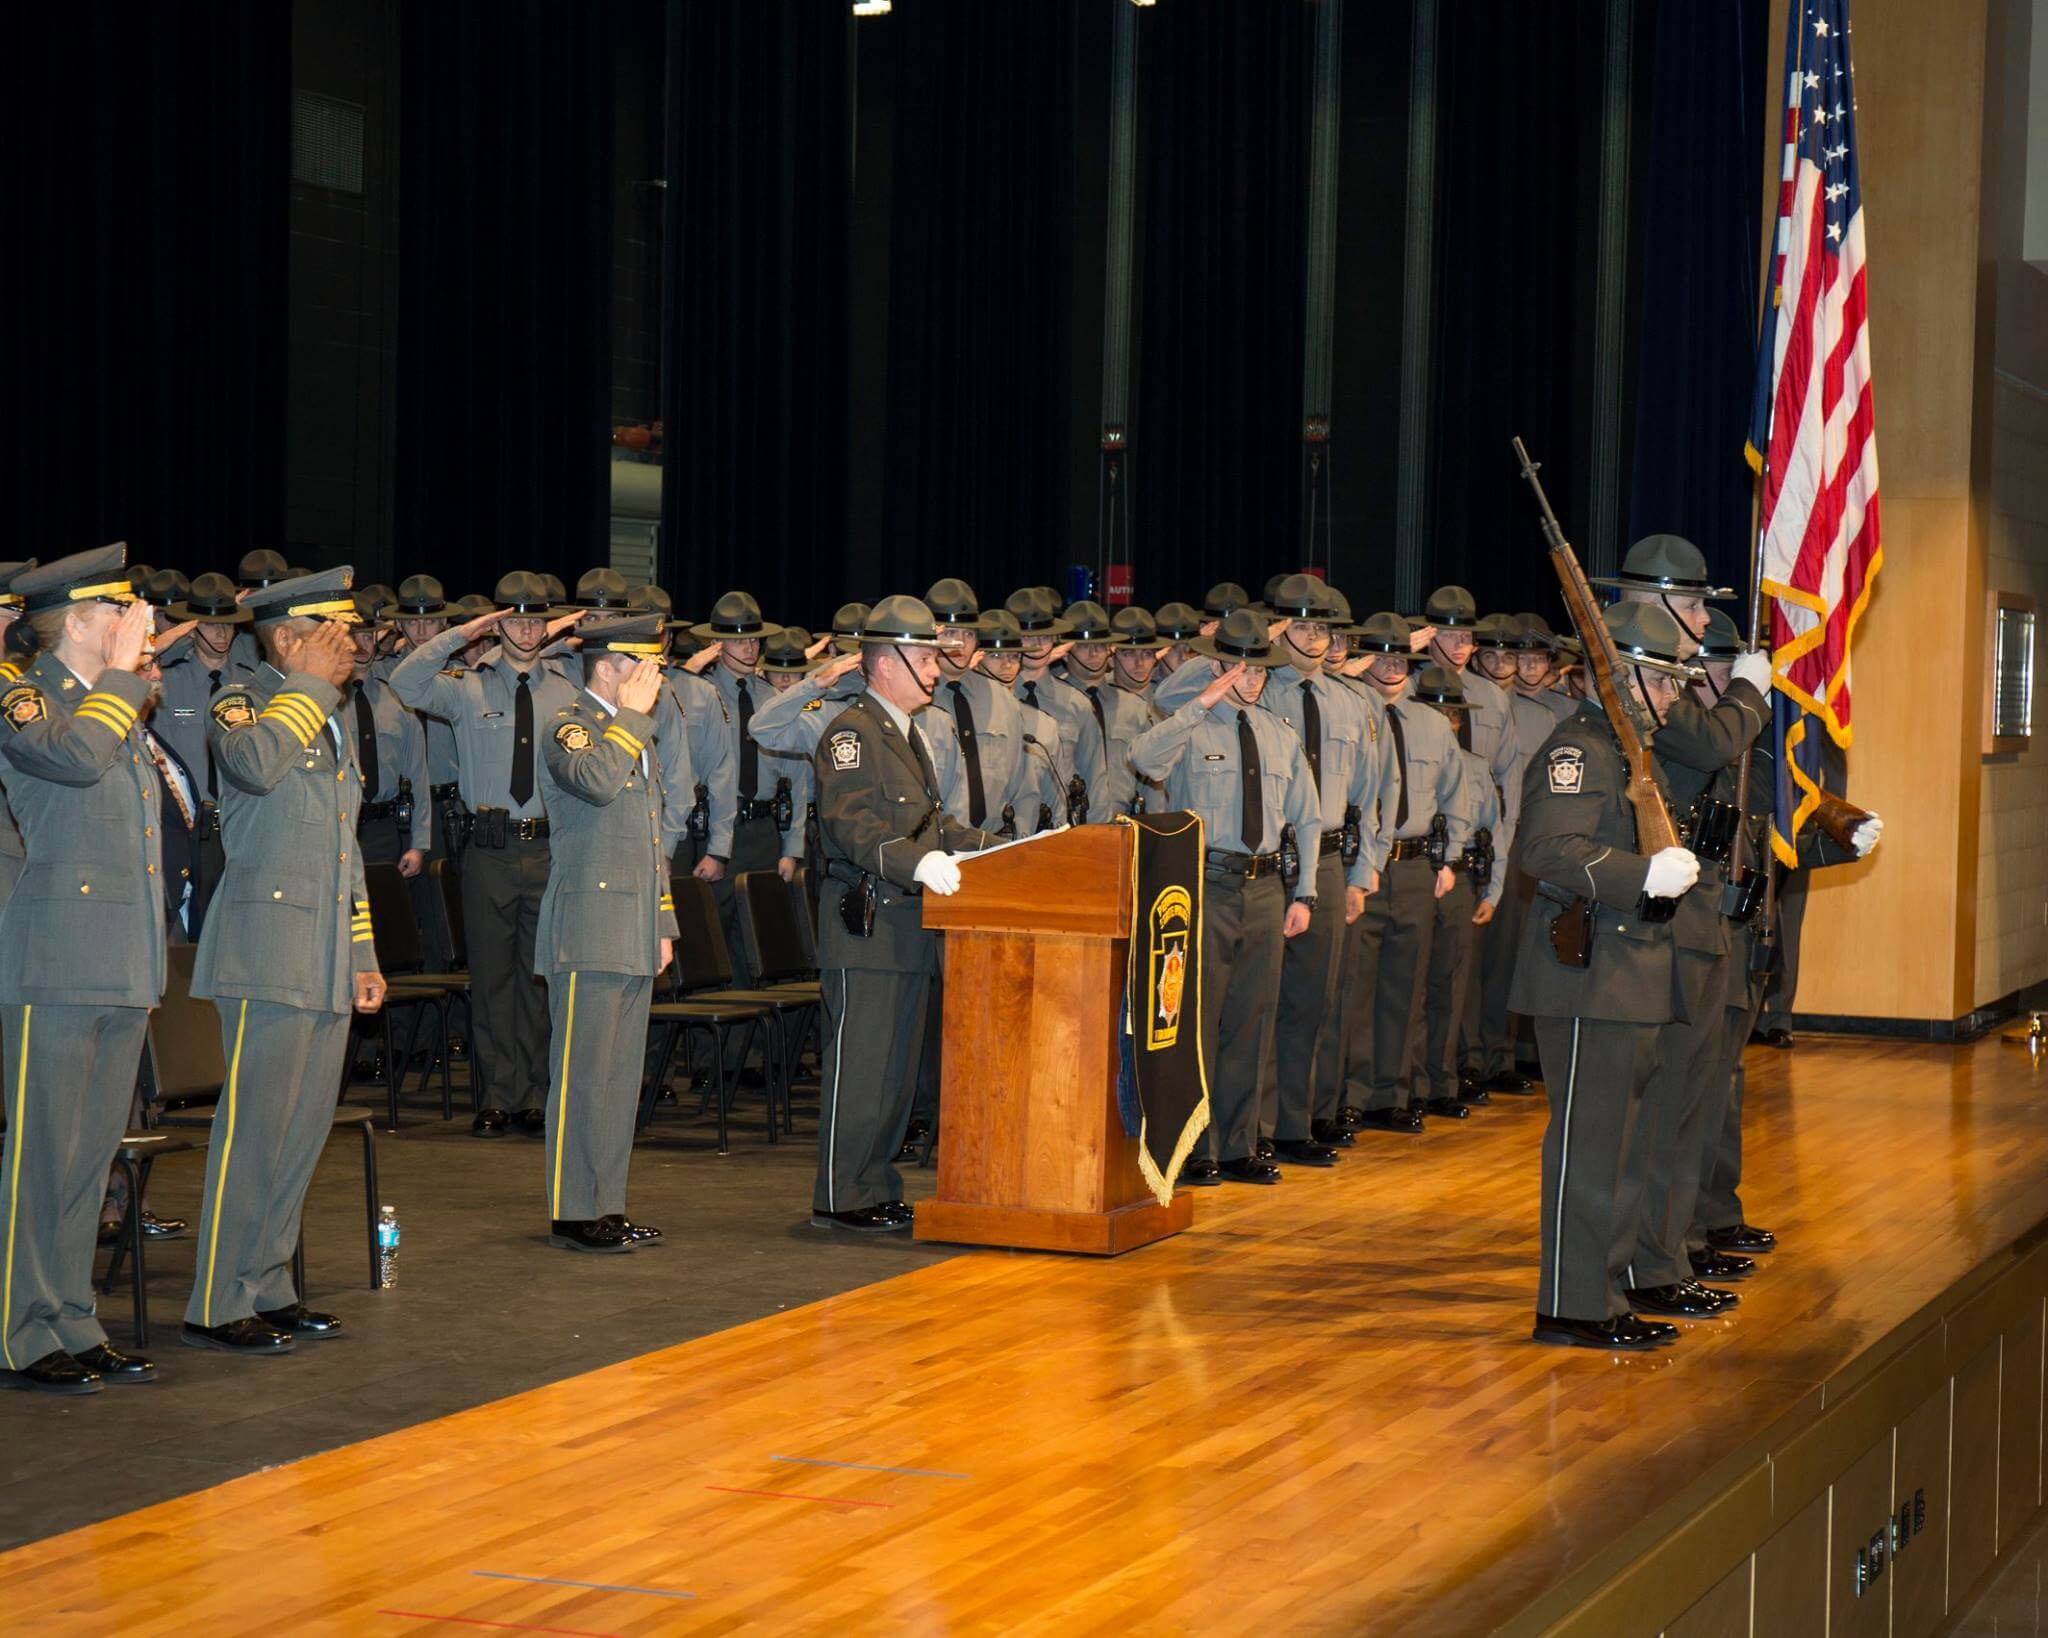 PA state police graduation December 2016